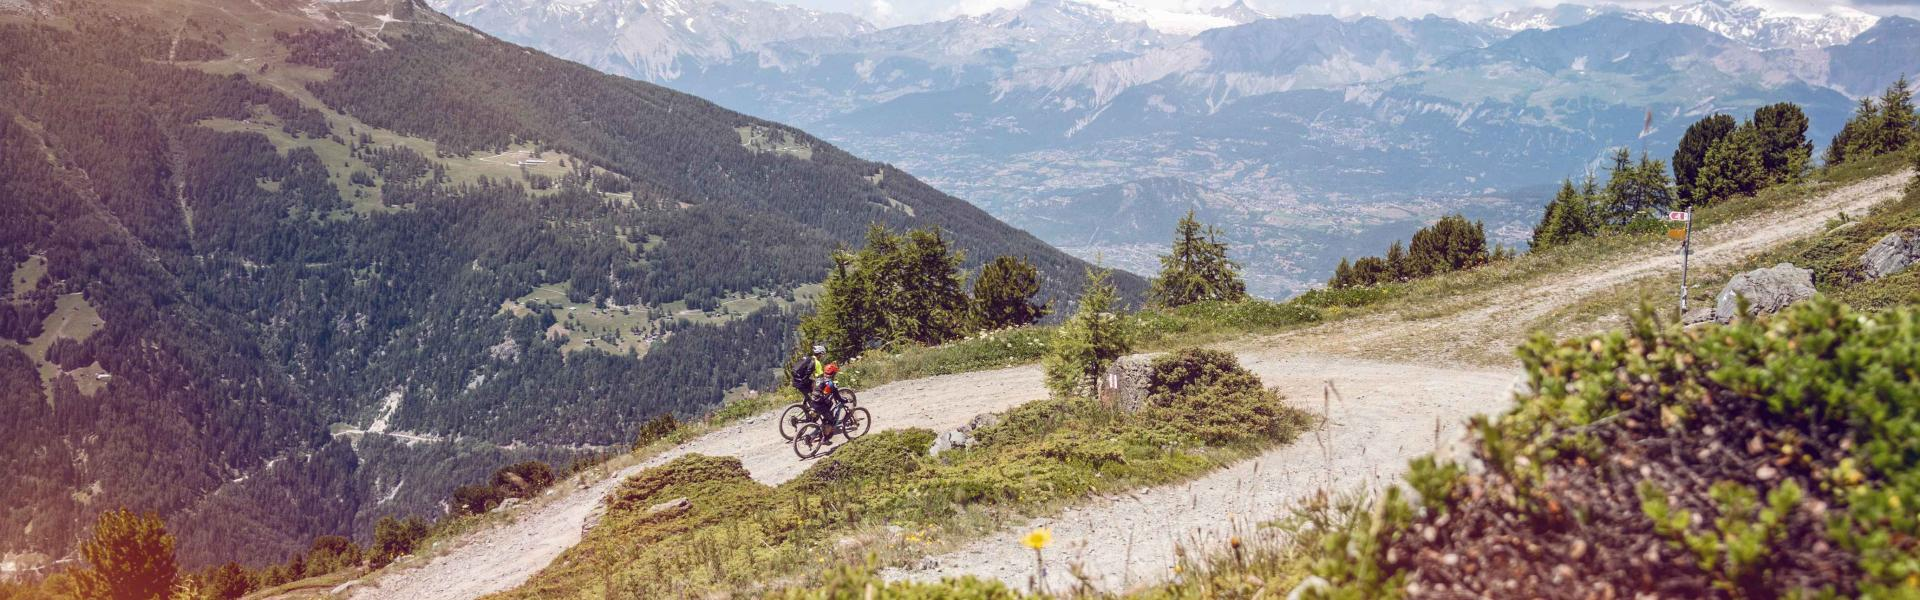 2 people on an e-bike on a climb with a magnificent view, Valais Switzerland